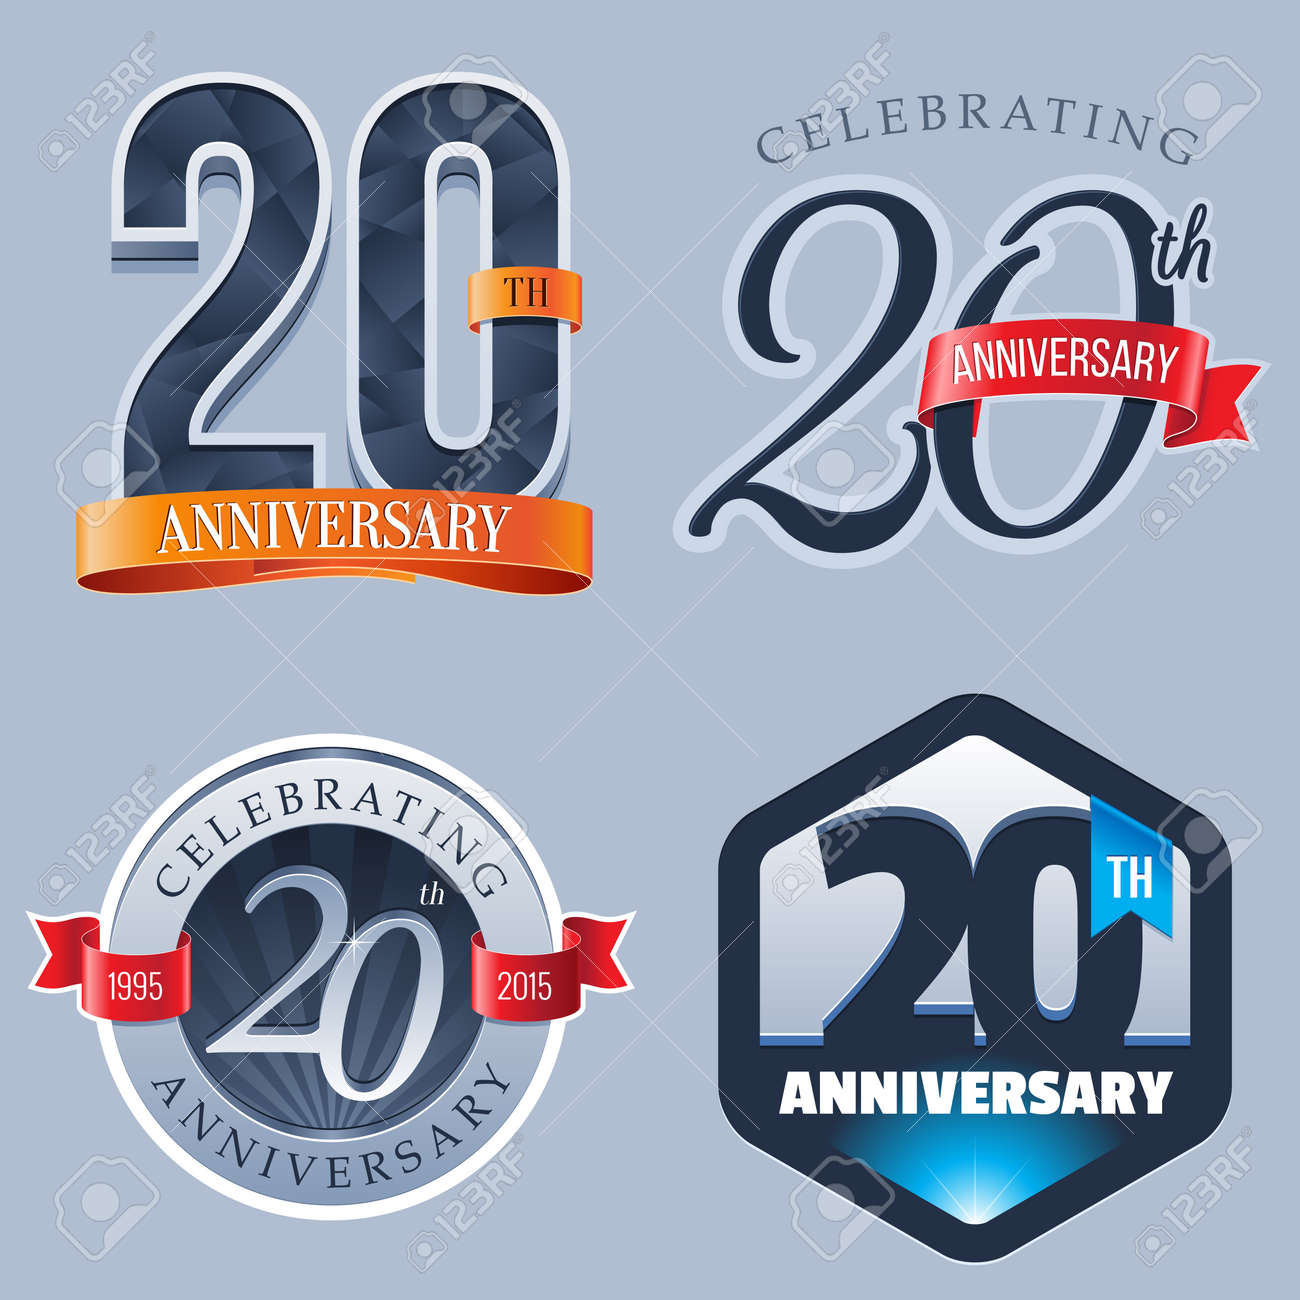 20 years anniversary logo royalty free cliparts vectors and 20 years anniversary logo stock vector 49801941 altavistaventures Image collections